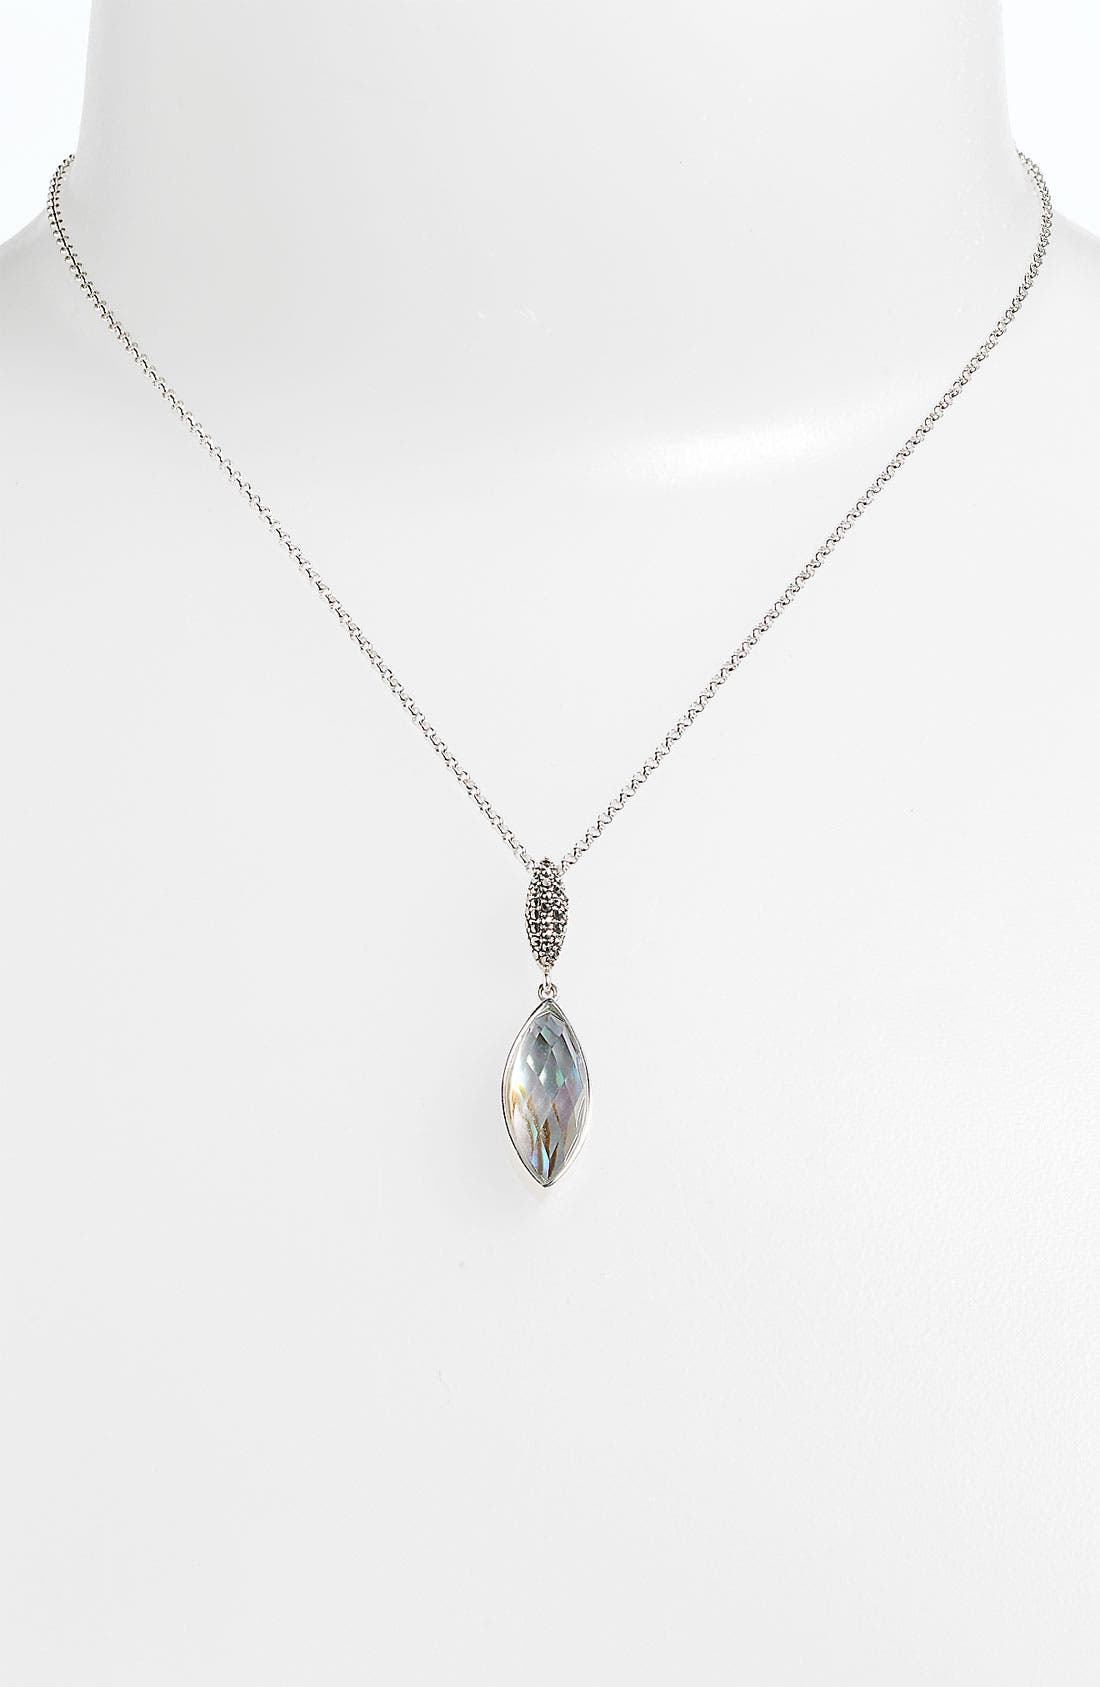 Alternate Image 1 Selected - Judith Jack Abalone Doublet Pendant Necklace